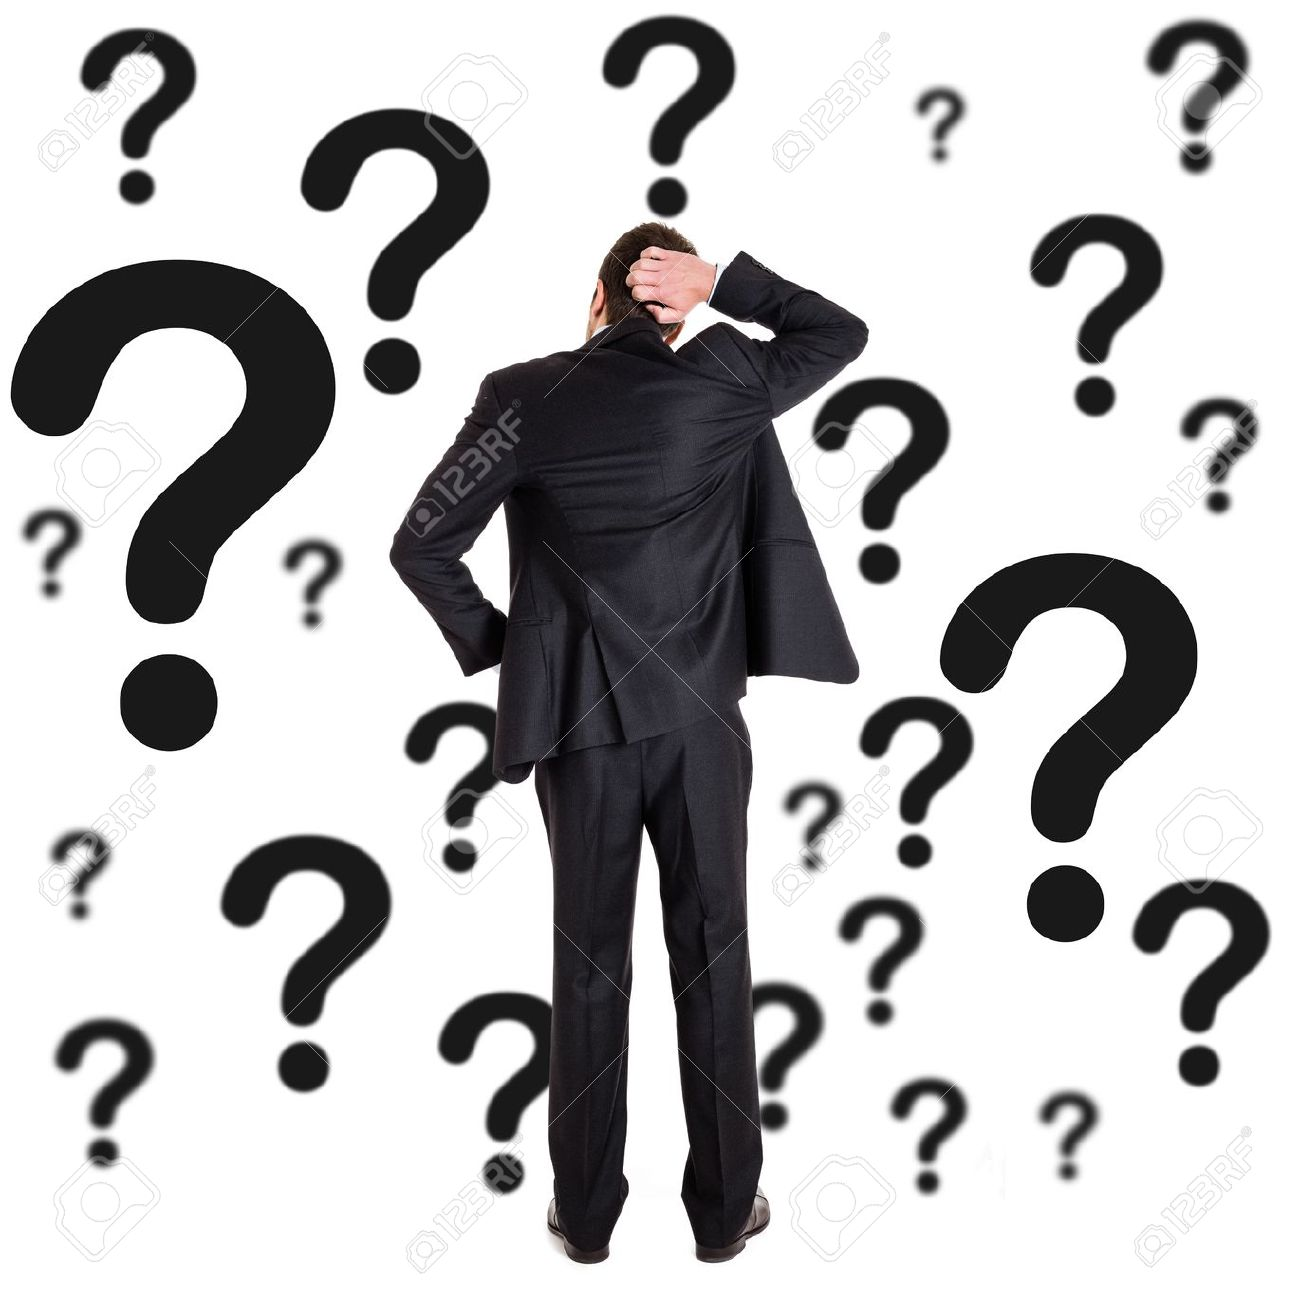 Thoughtful Man Surrounded By Question Marks Stock Photo, Picture And ...